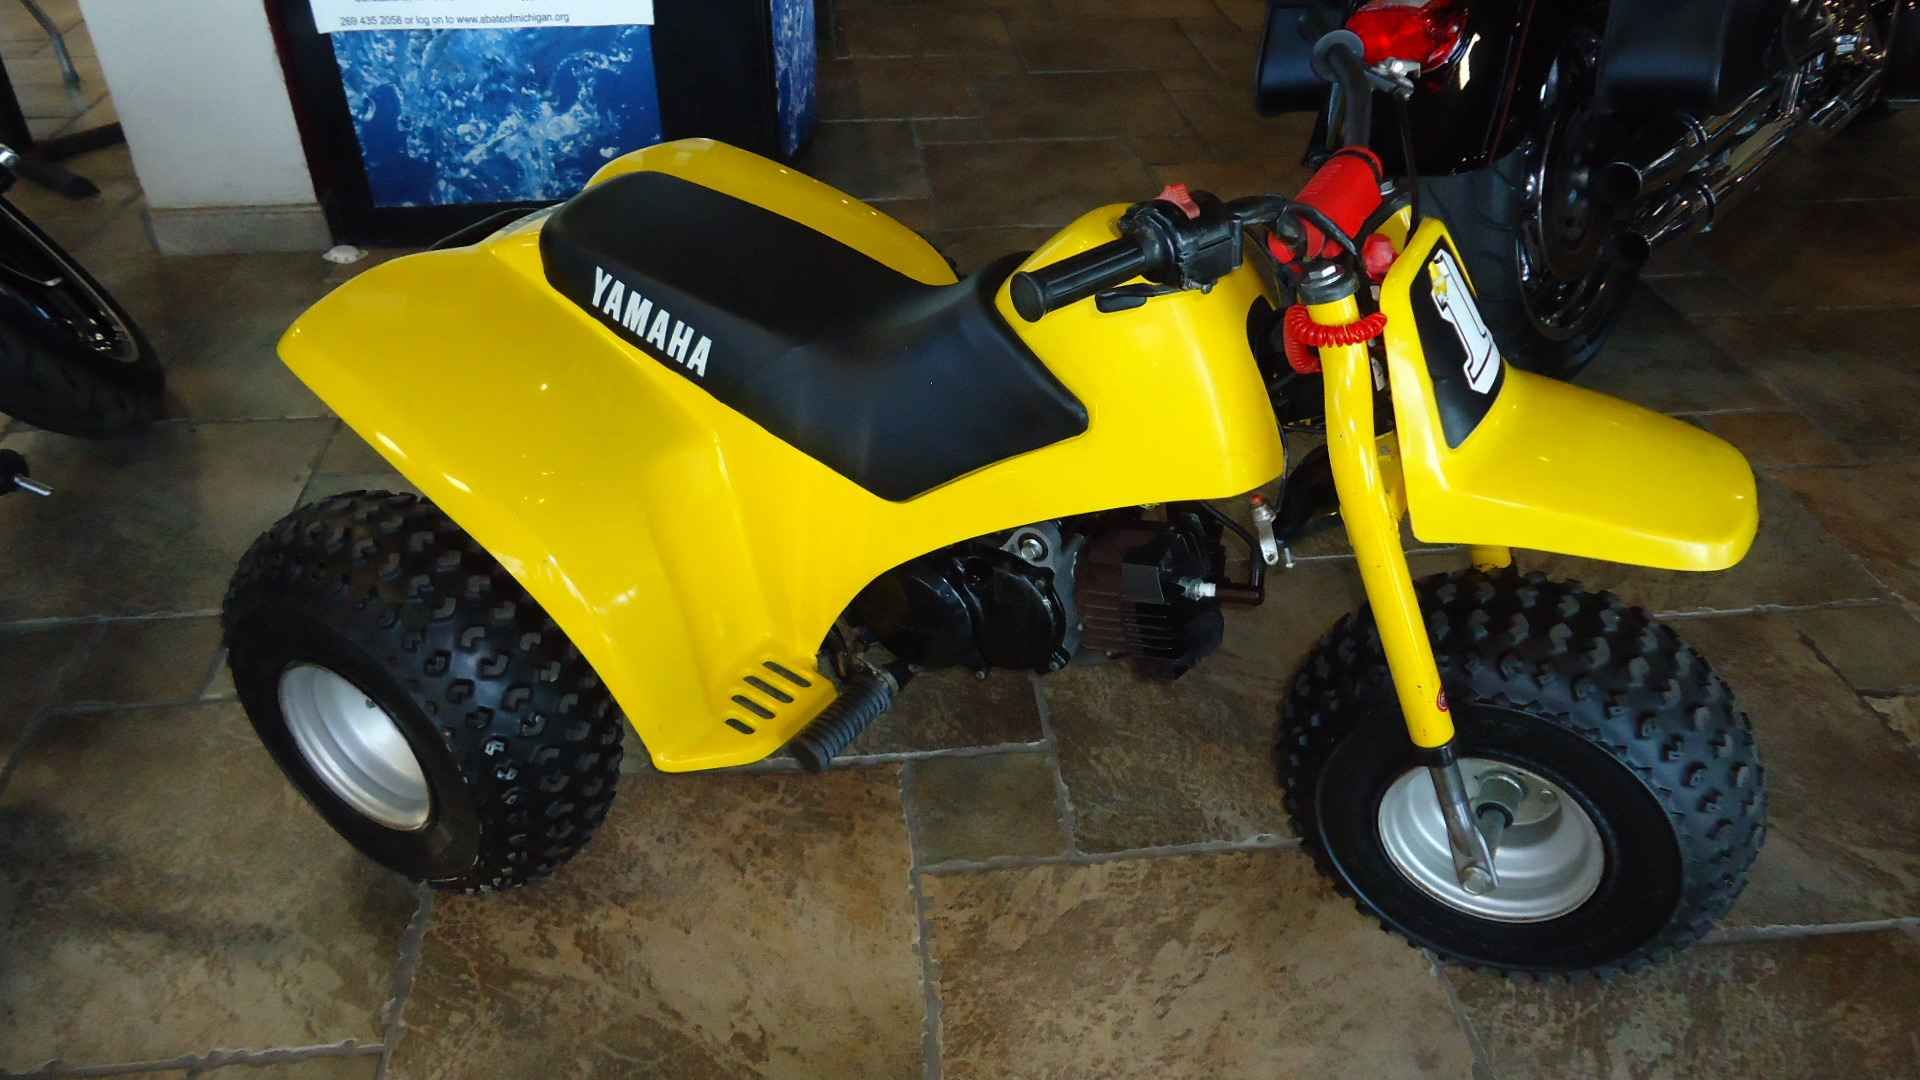 1984 Yamaha Tri Zinger Atc T Atv Yt60 Wiring Diagram 3 Of 12 2 Stroke Trike Very Rare Pw 50 Eater Childs Look